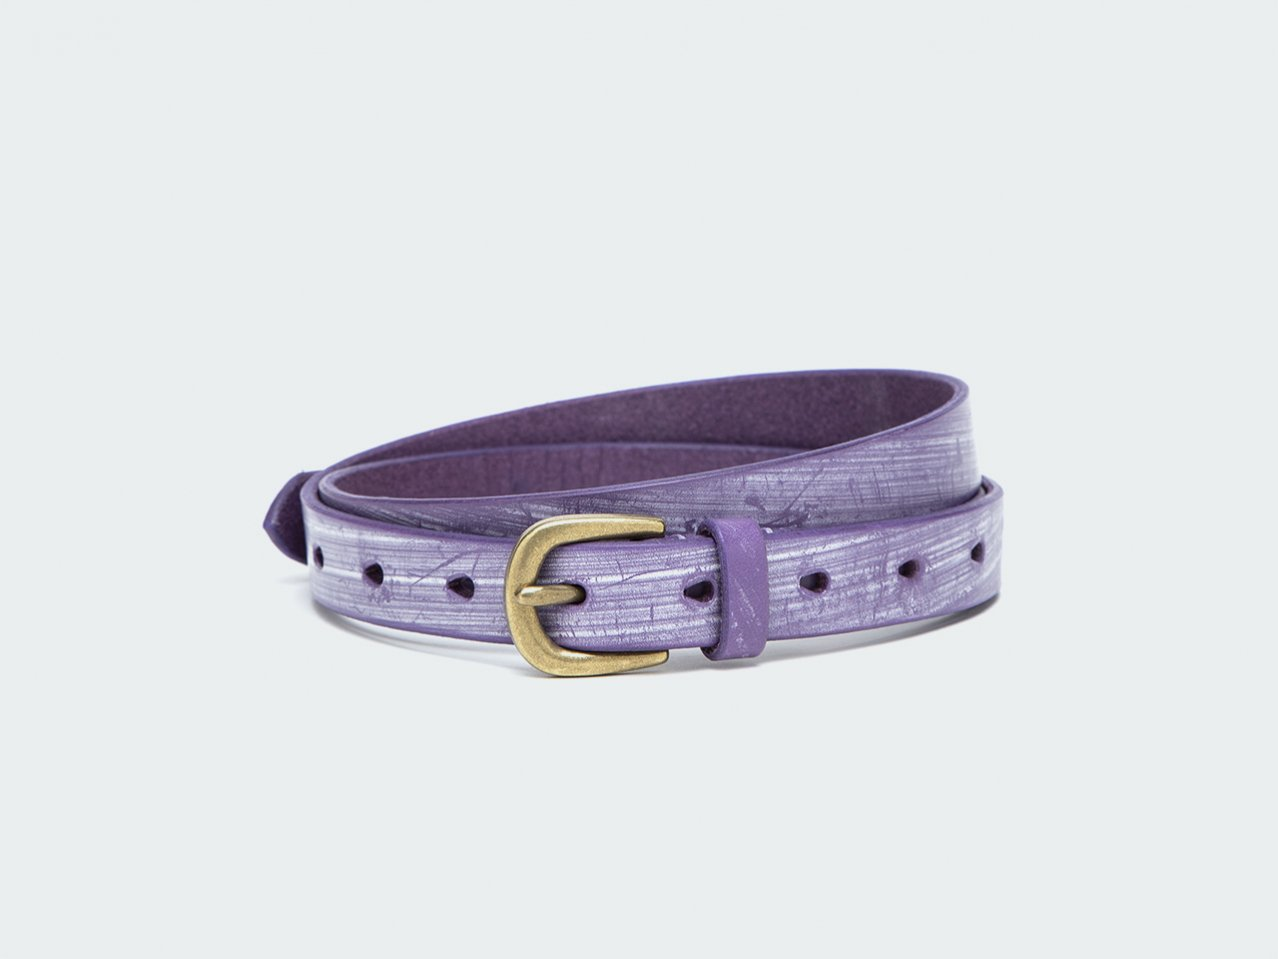 NARROW STANDARD (Bridle) 20 / PURPLE